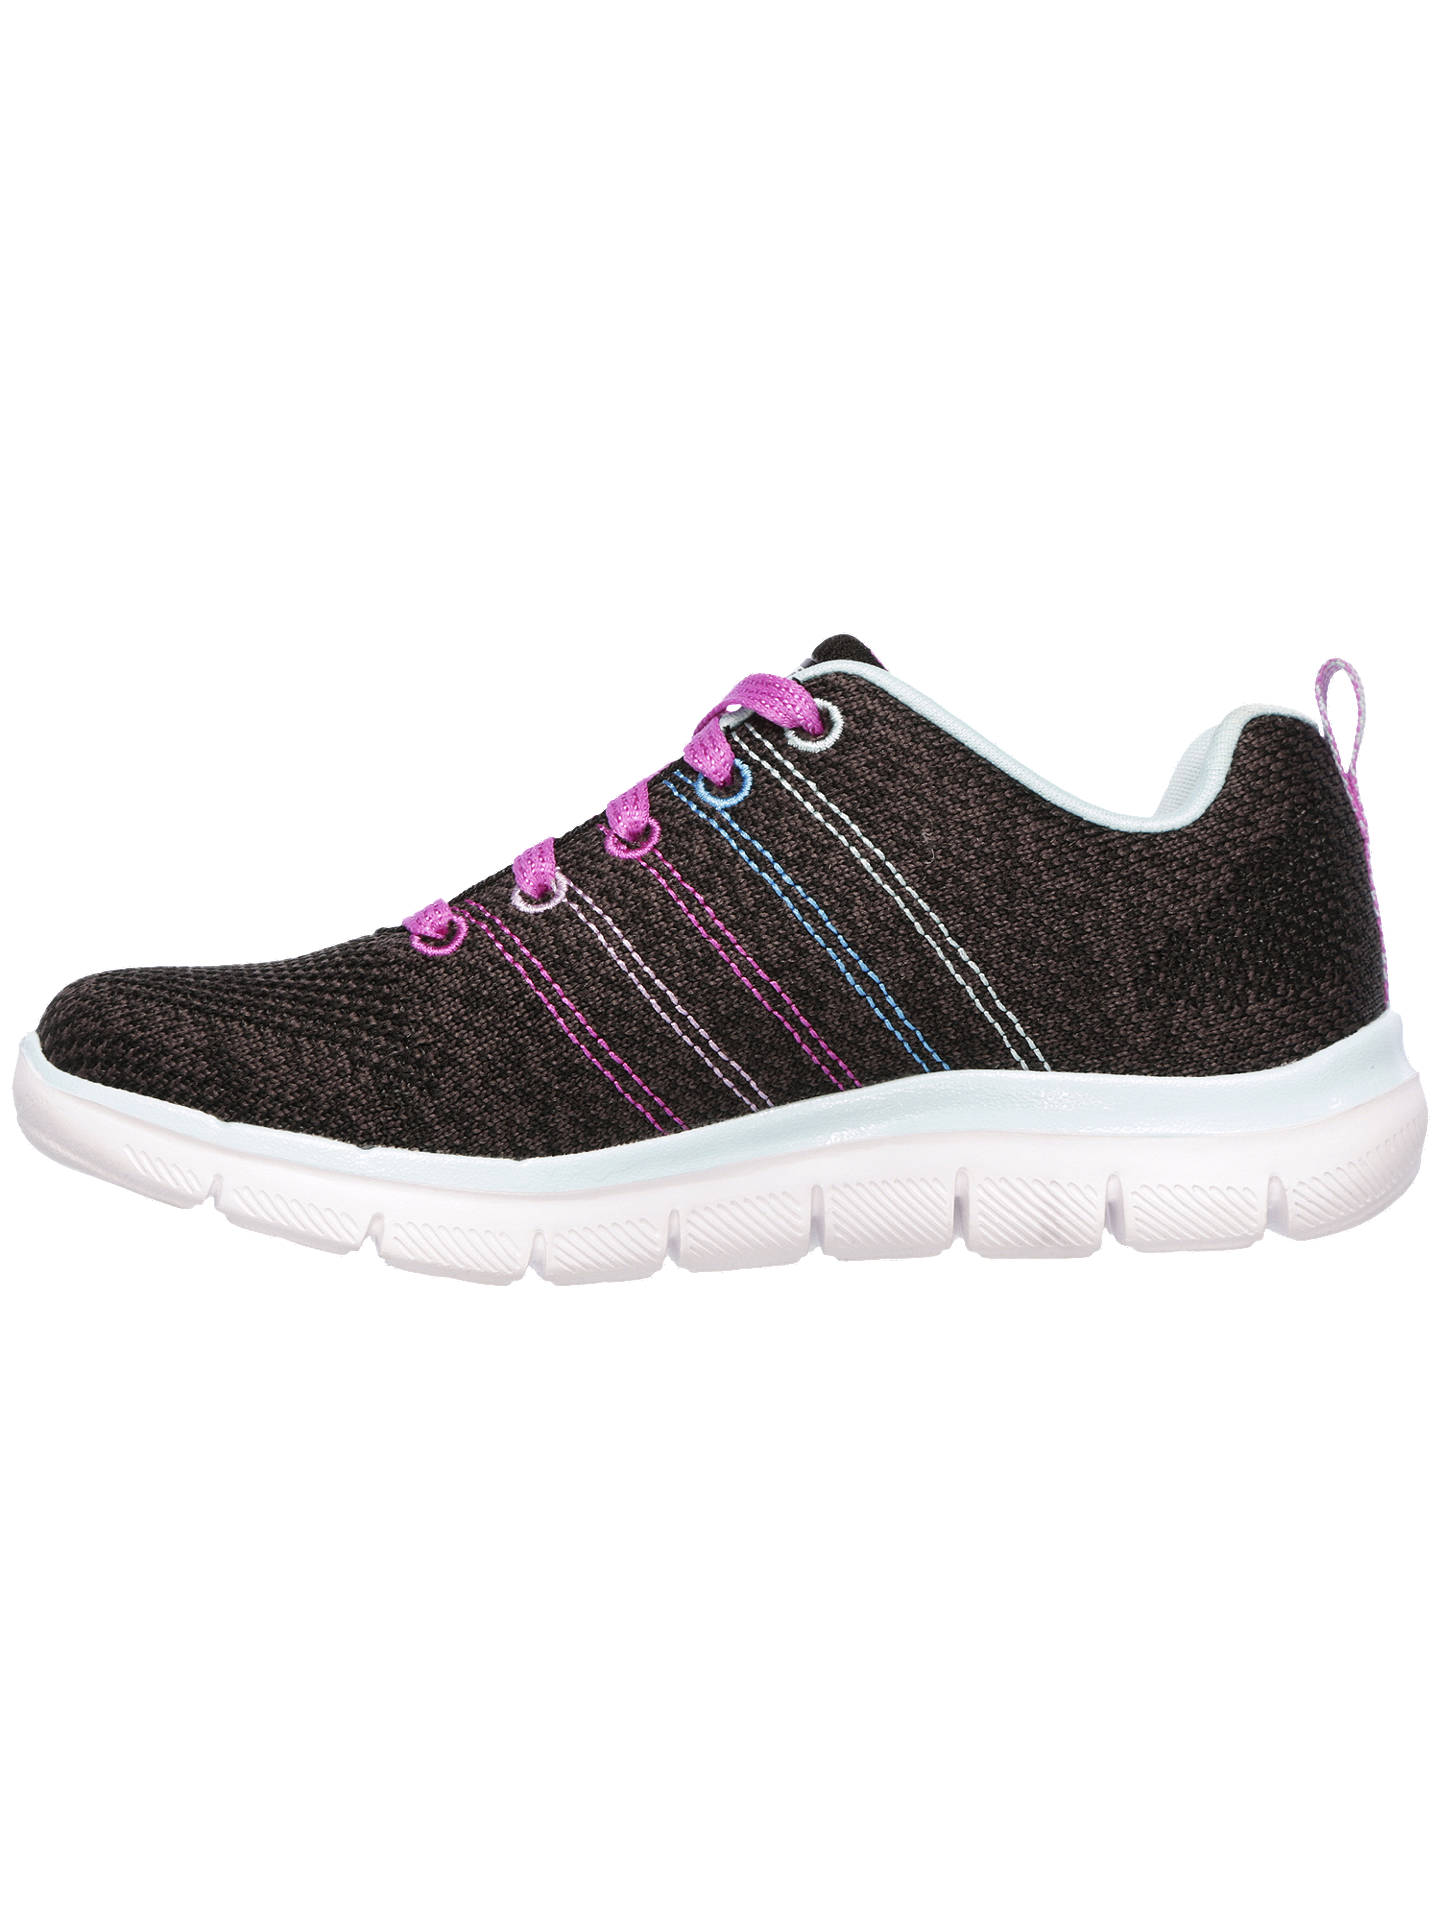 Buy Skechers Children's Skech Appeal 2.0 High Energy Trainers, Black, 37 Online at johnlewis.com